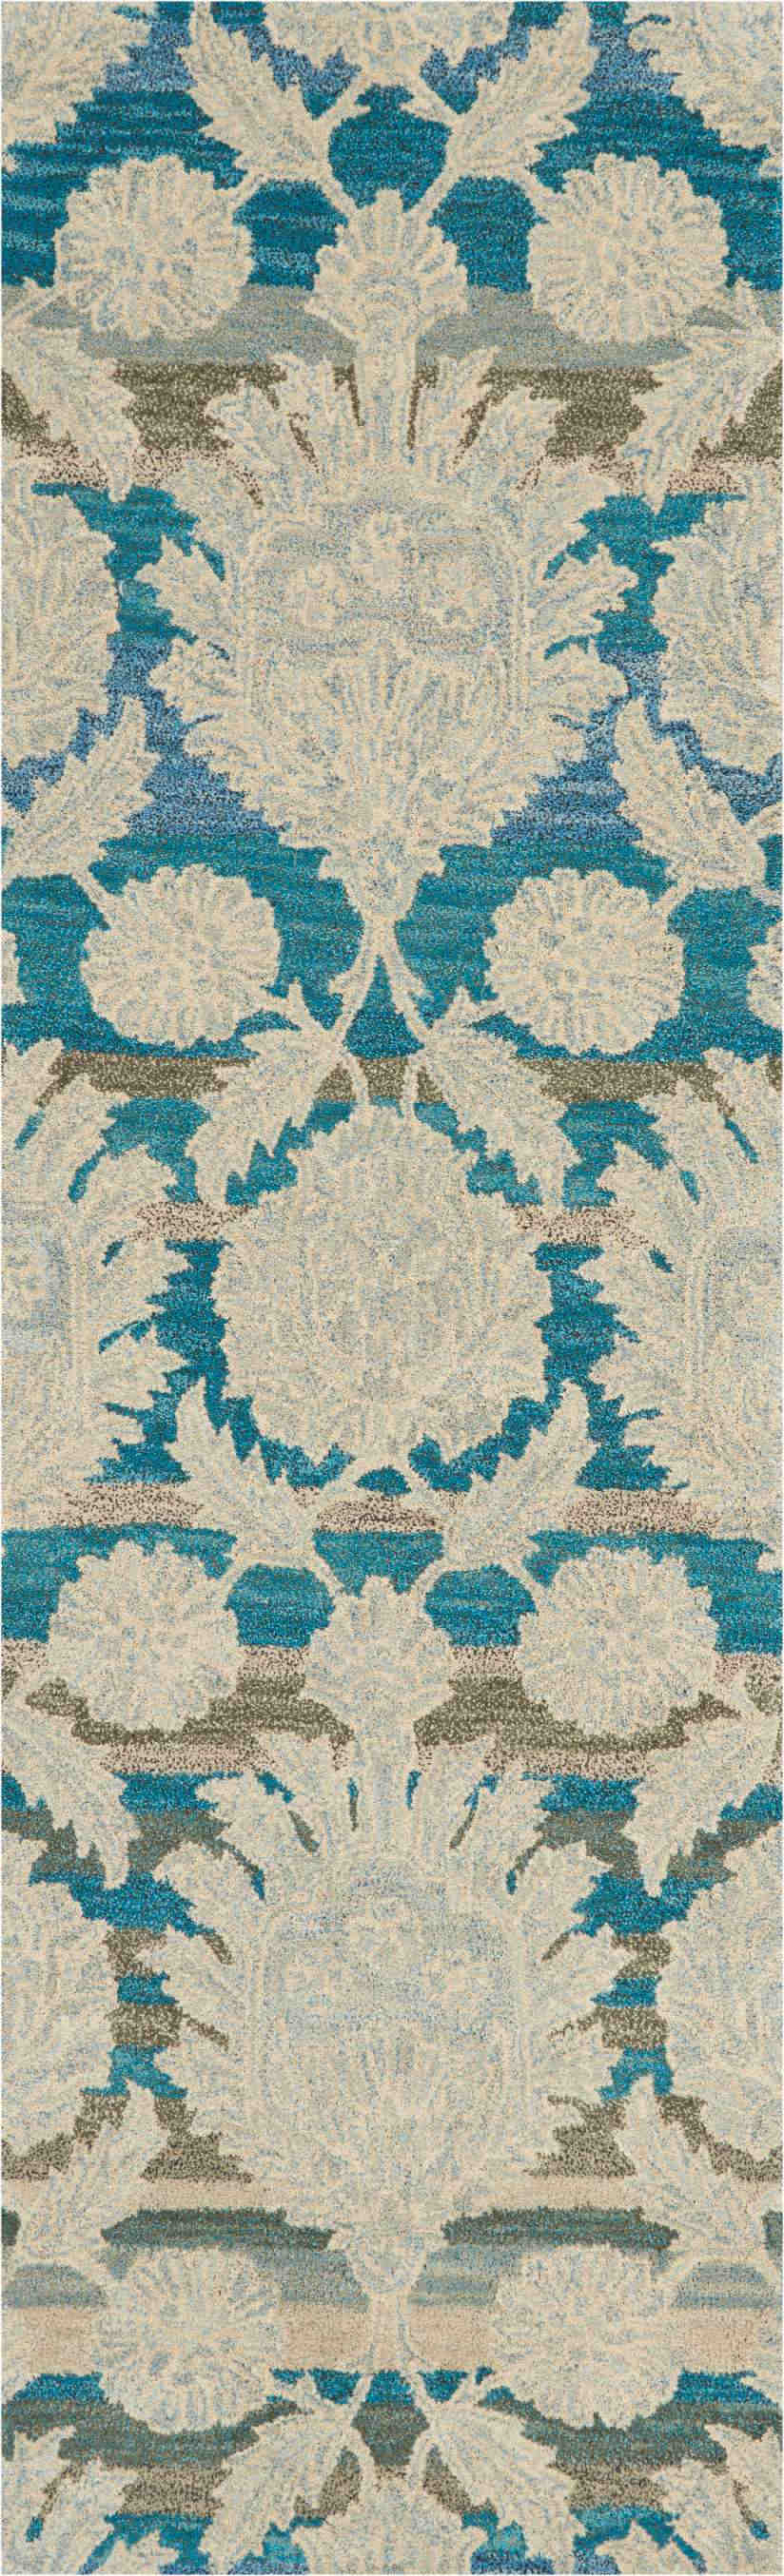 Nourison India House Modern/contemporary Rugs  Ih91